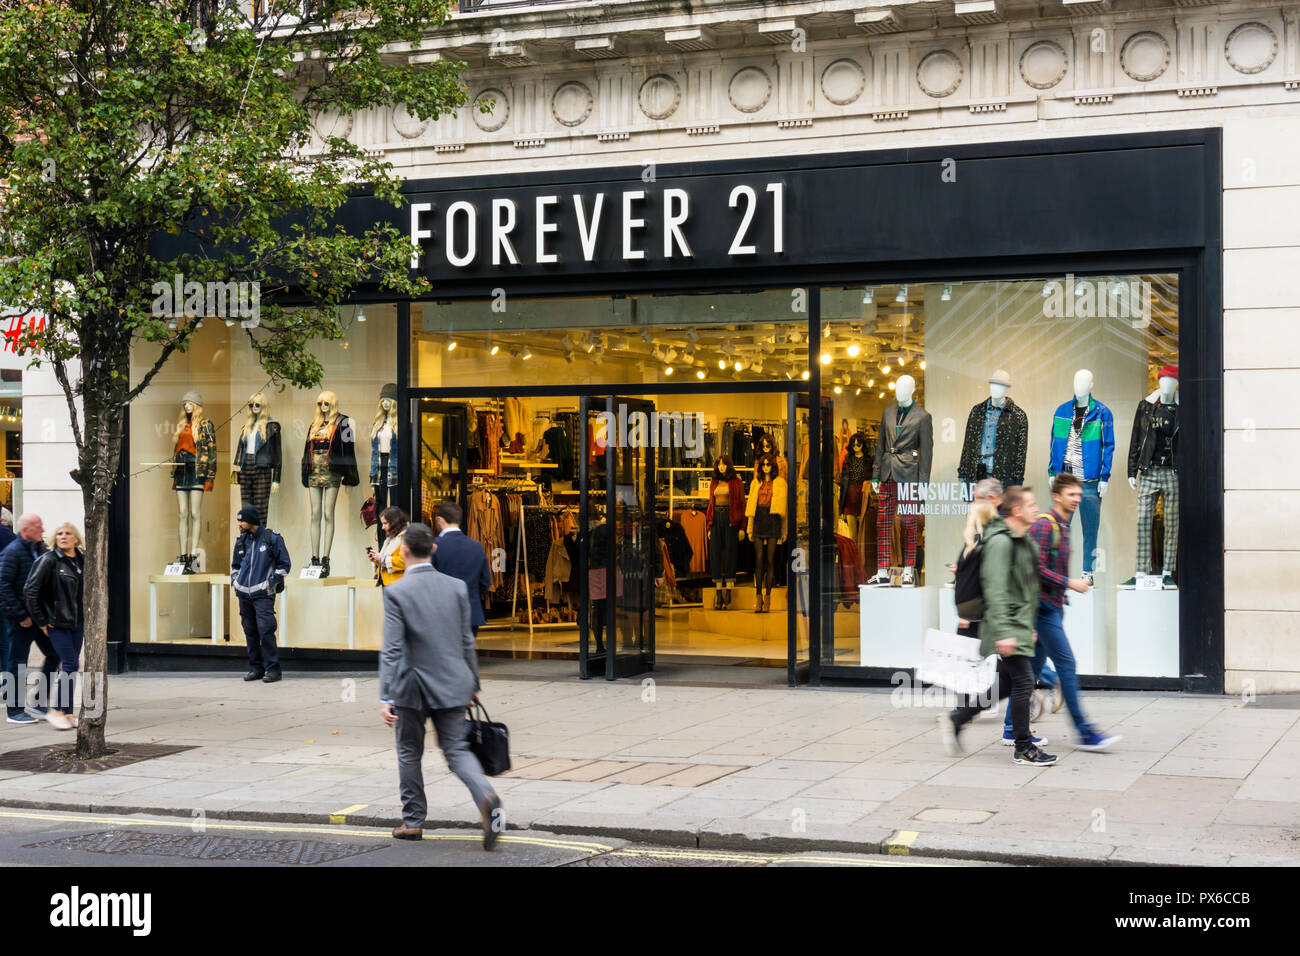 FOREVER 21, is a Californian fast fashion retailer. Shown is shop in Oxford Street, London. - Stock Image